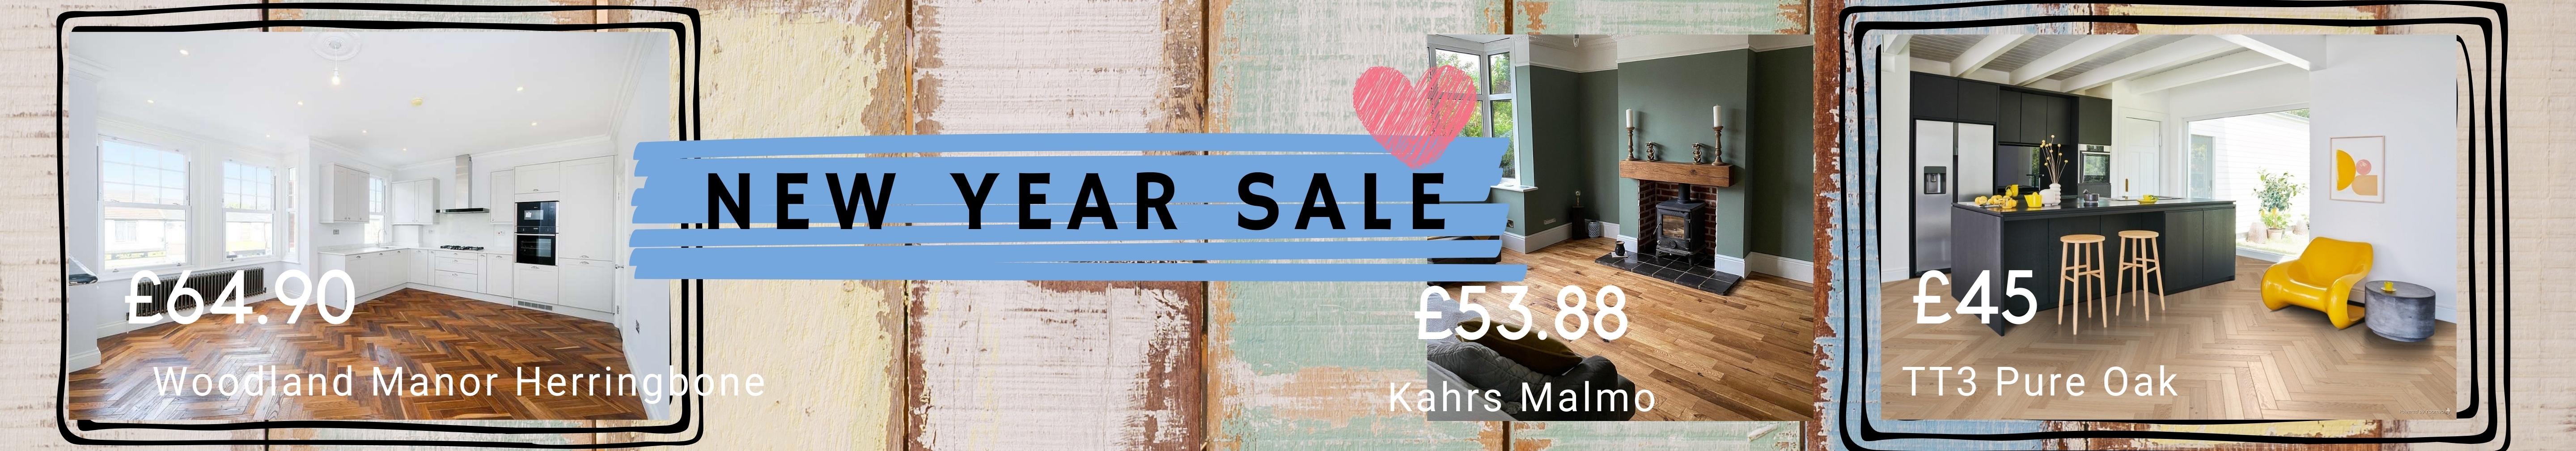 New_Year_Sale_2021_Banner.jpg